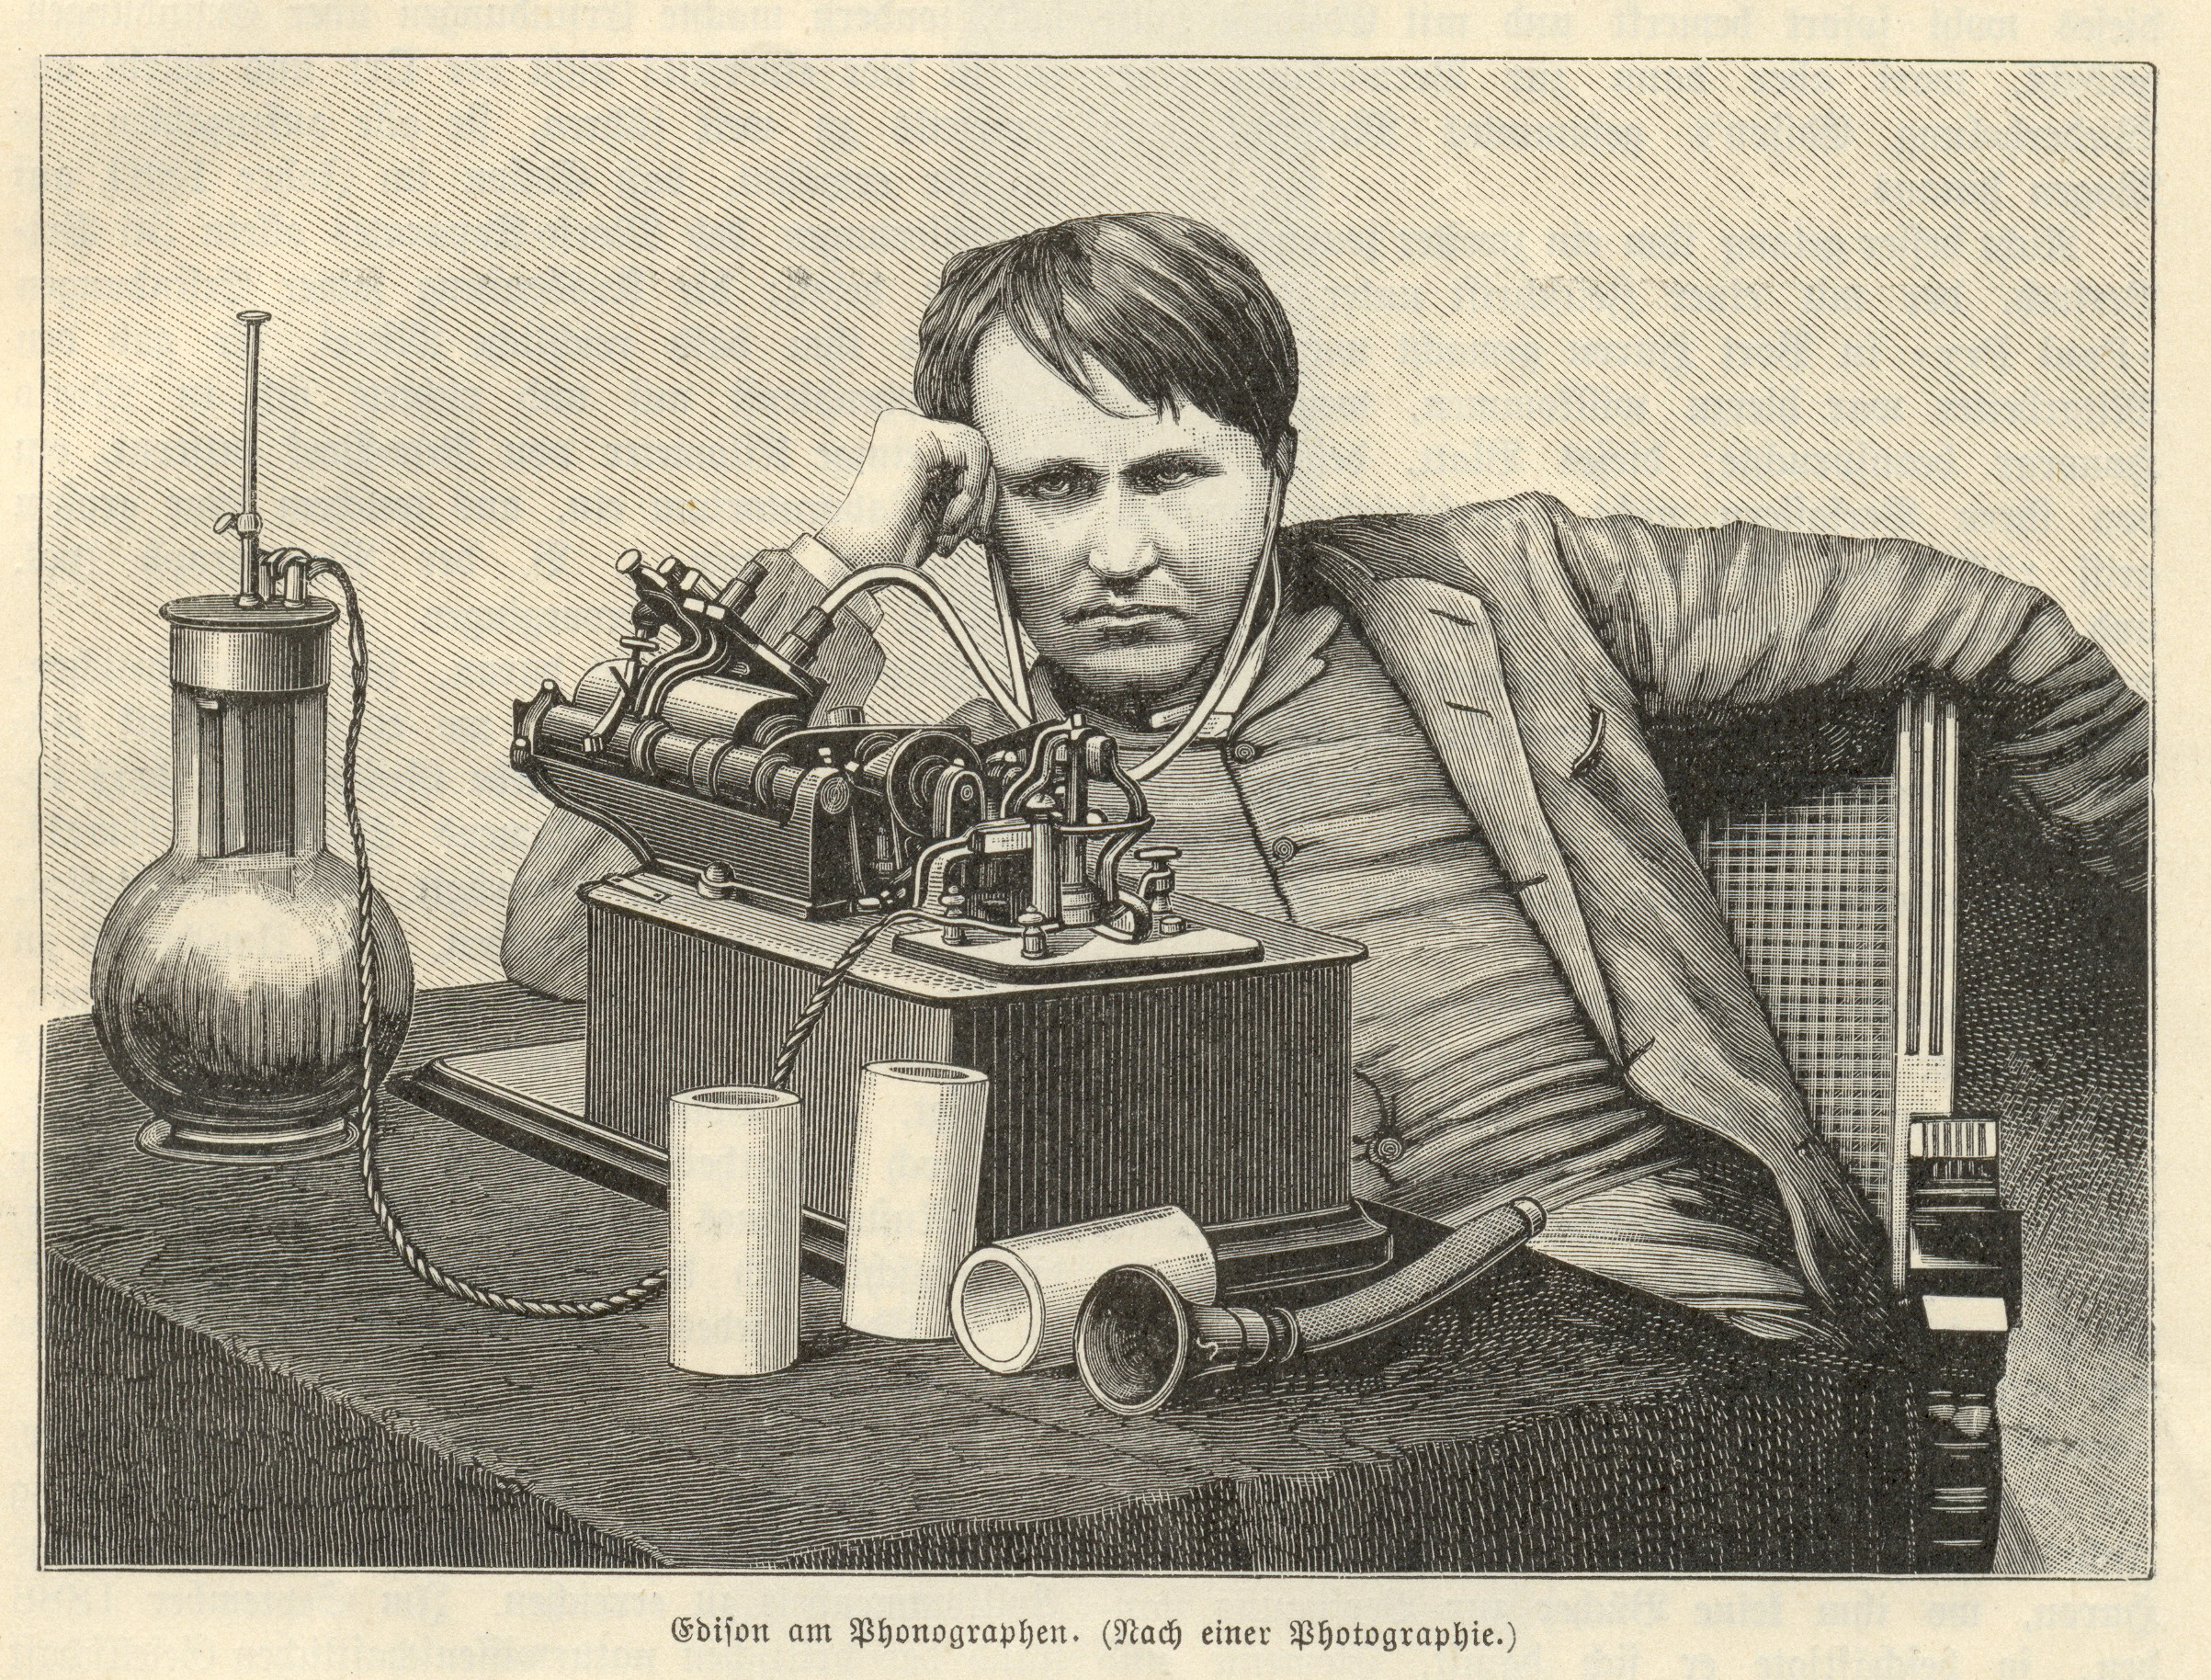 http://upload.wikimedia.org/wikipedia/commons/b/ba/Edison.jpg